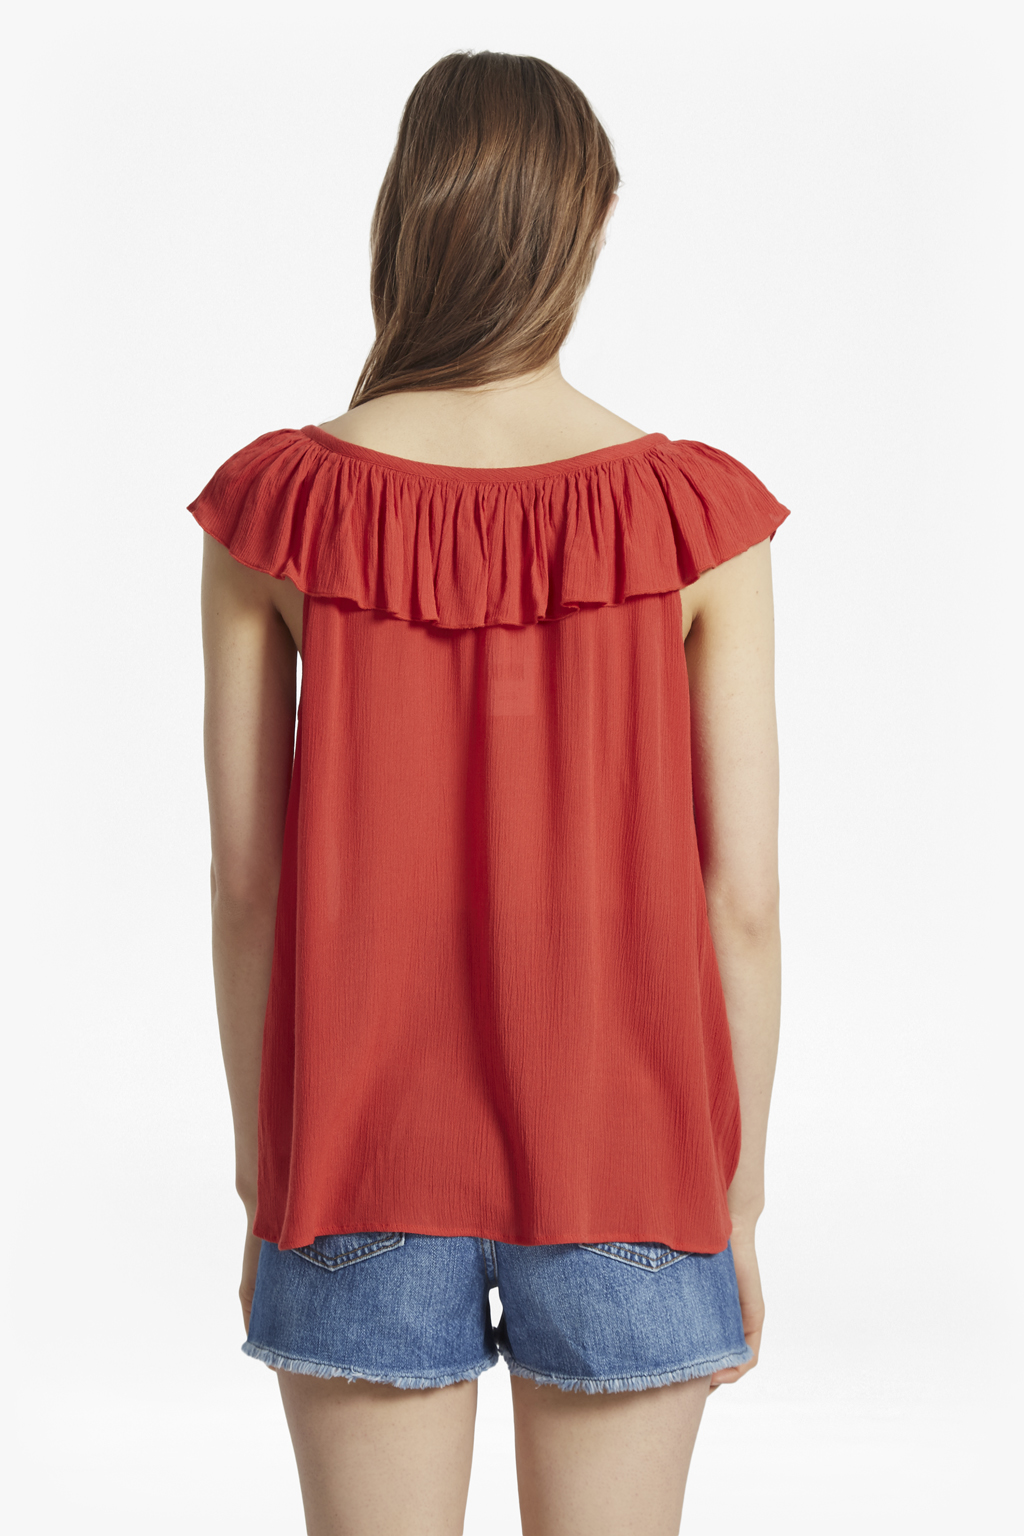 French Connection Afia Crinkle Ruffled Top Cheap Sale Ebay Authentic Cheap Price FL1Hofpo0n